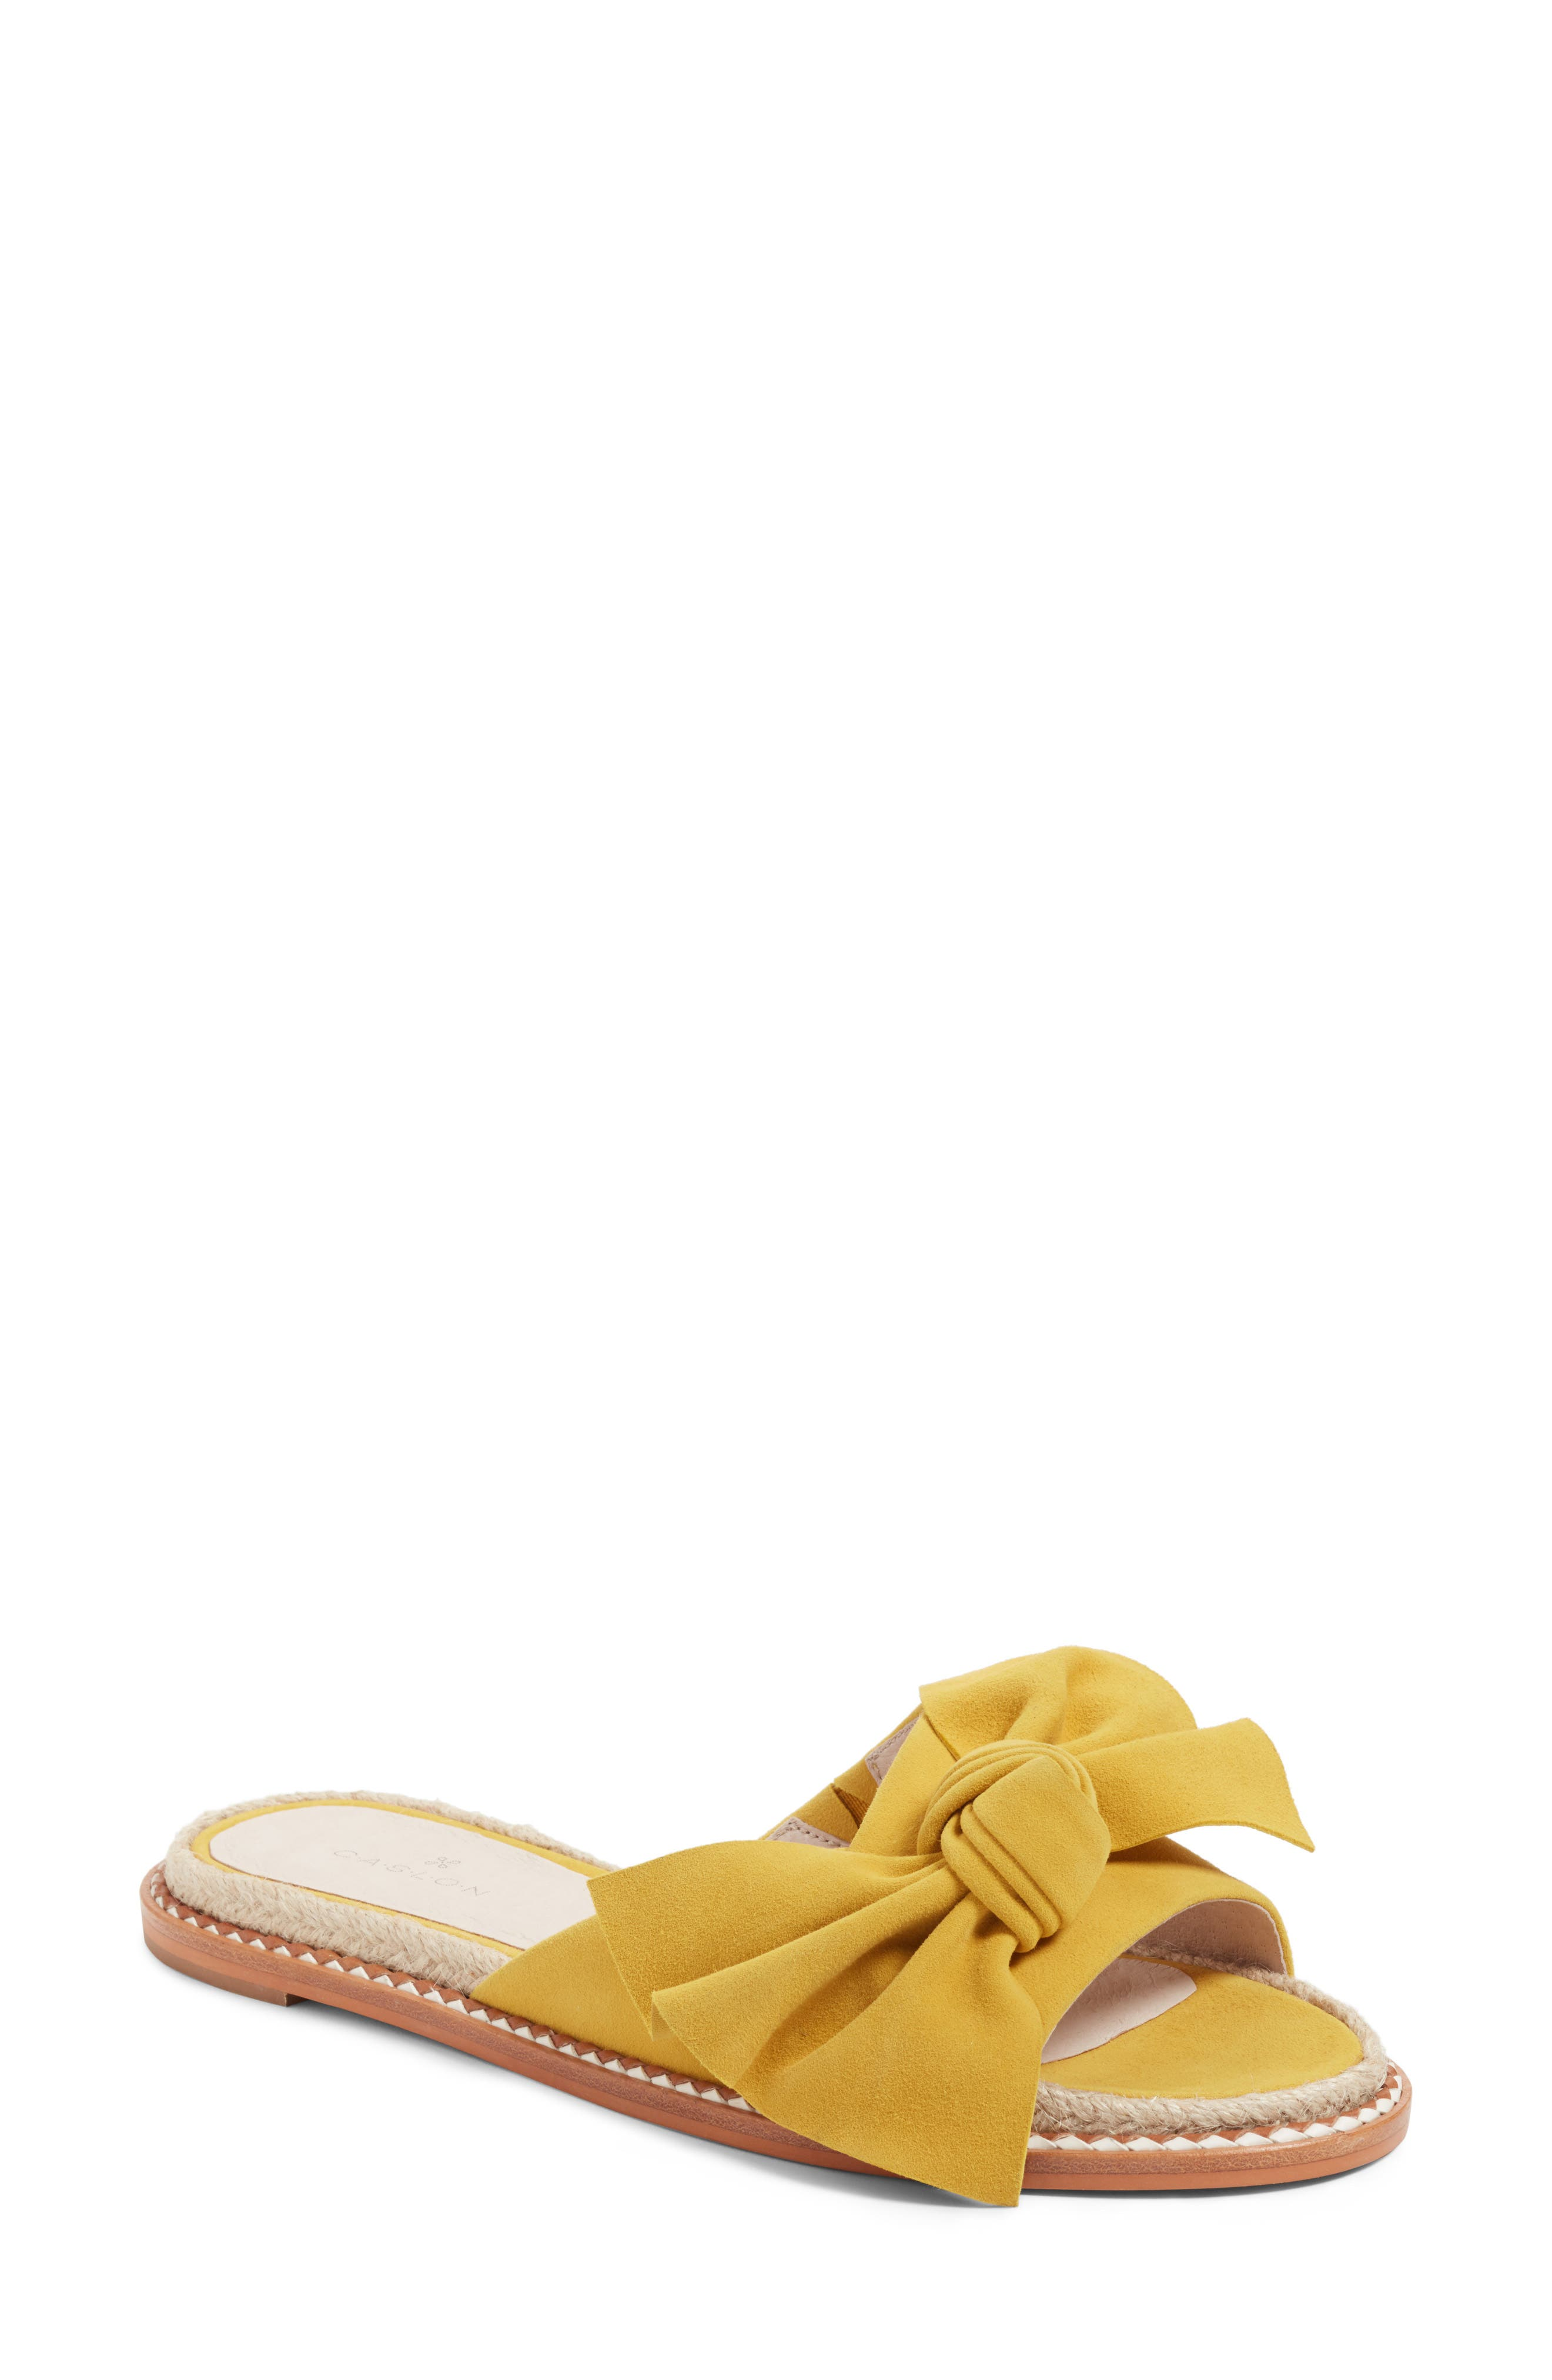 Darcie Slide Sandal,                         Main,                         color, Mustard Suede